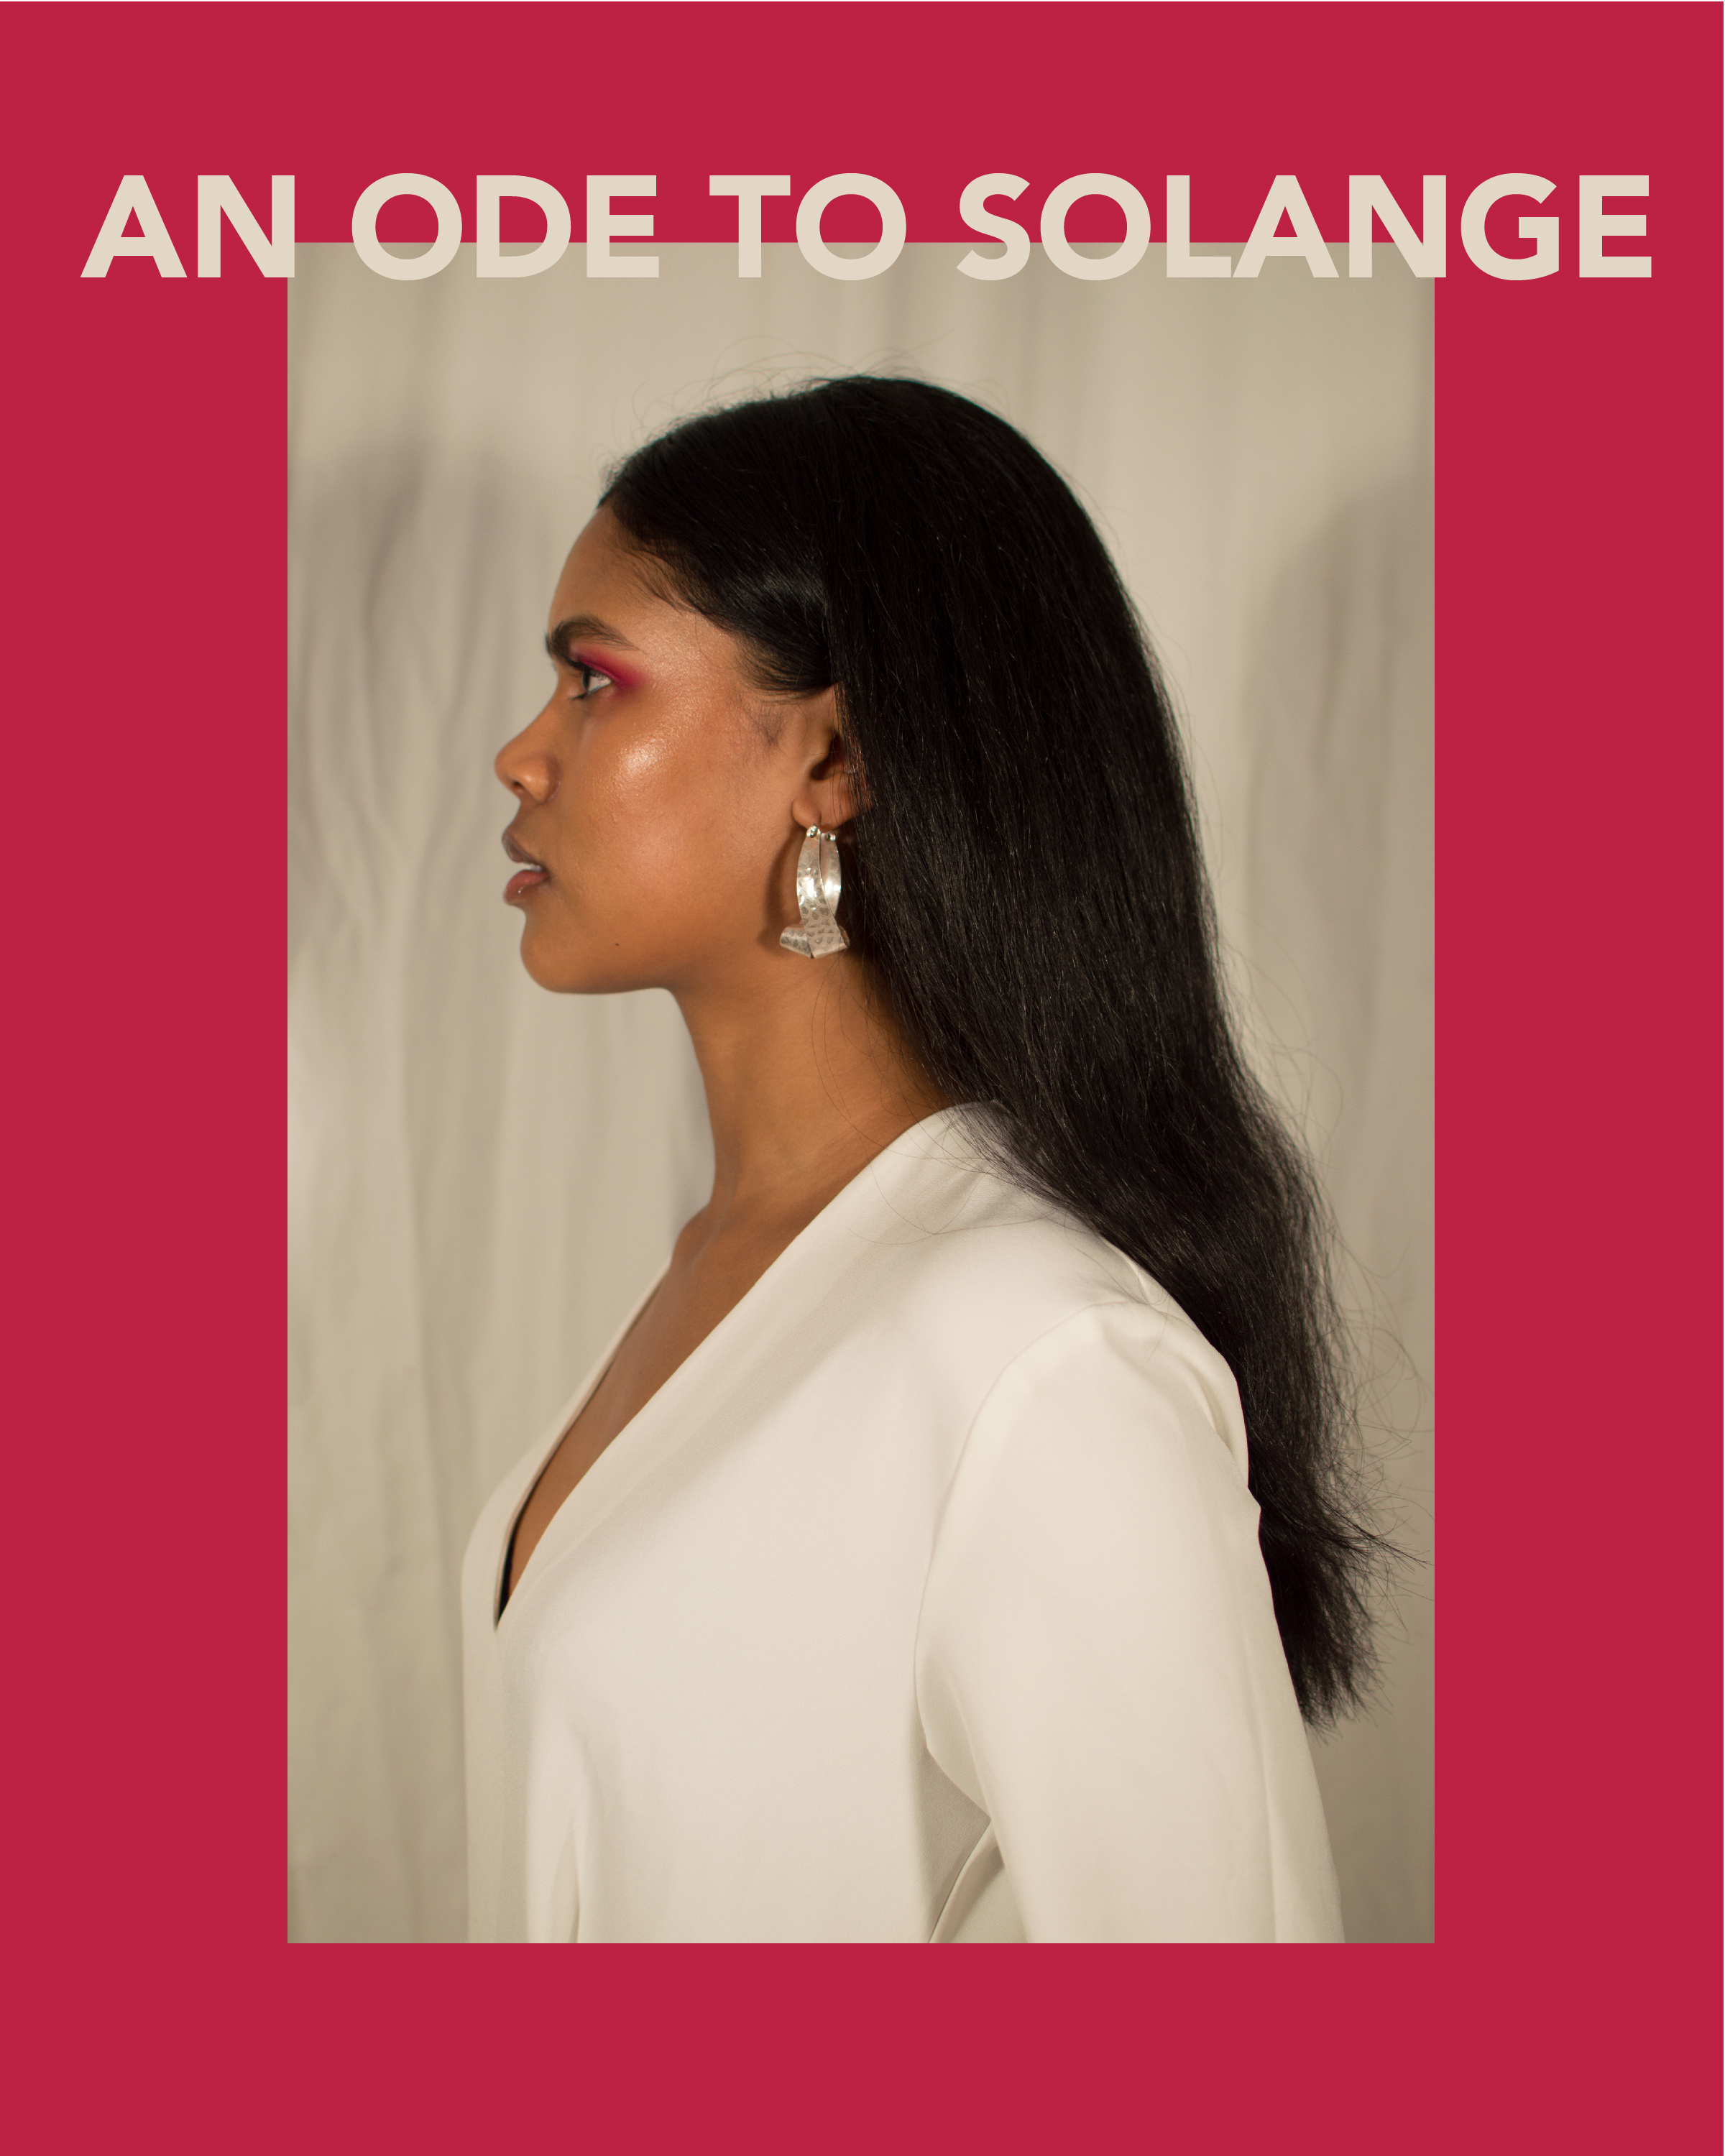 an ode to solange-01.jpg